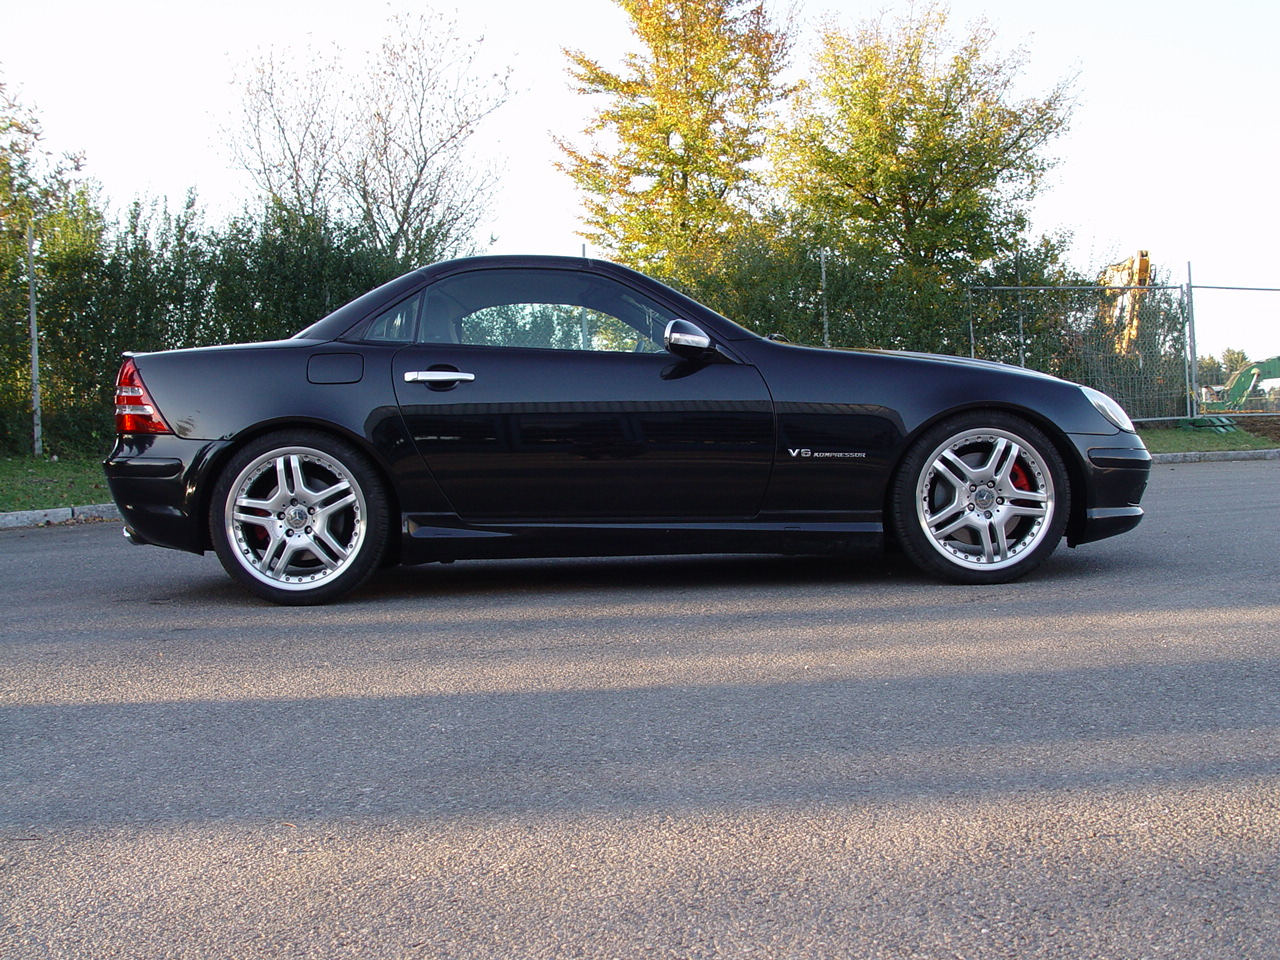 Mercedes Benz Slk R170 Tuning Pictures to pin on Pinterest